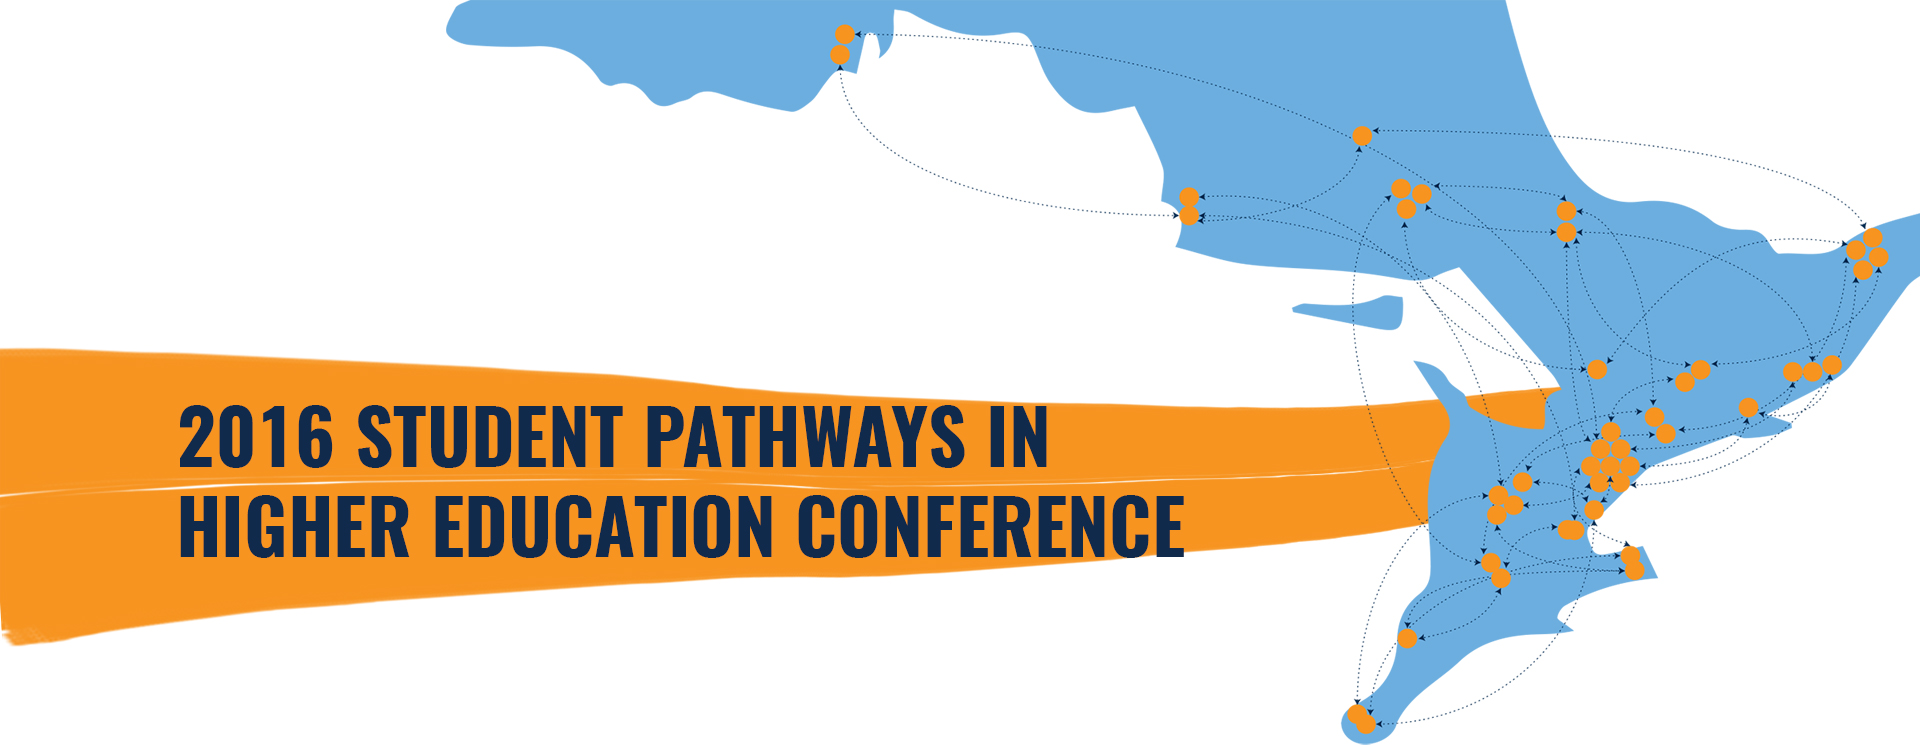 2016 Student Pathways in Higher Education Conference Banner